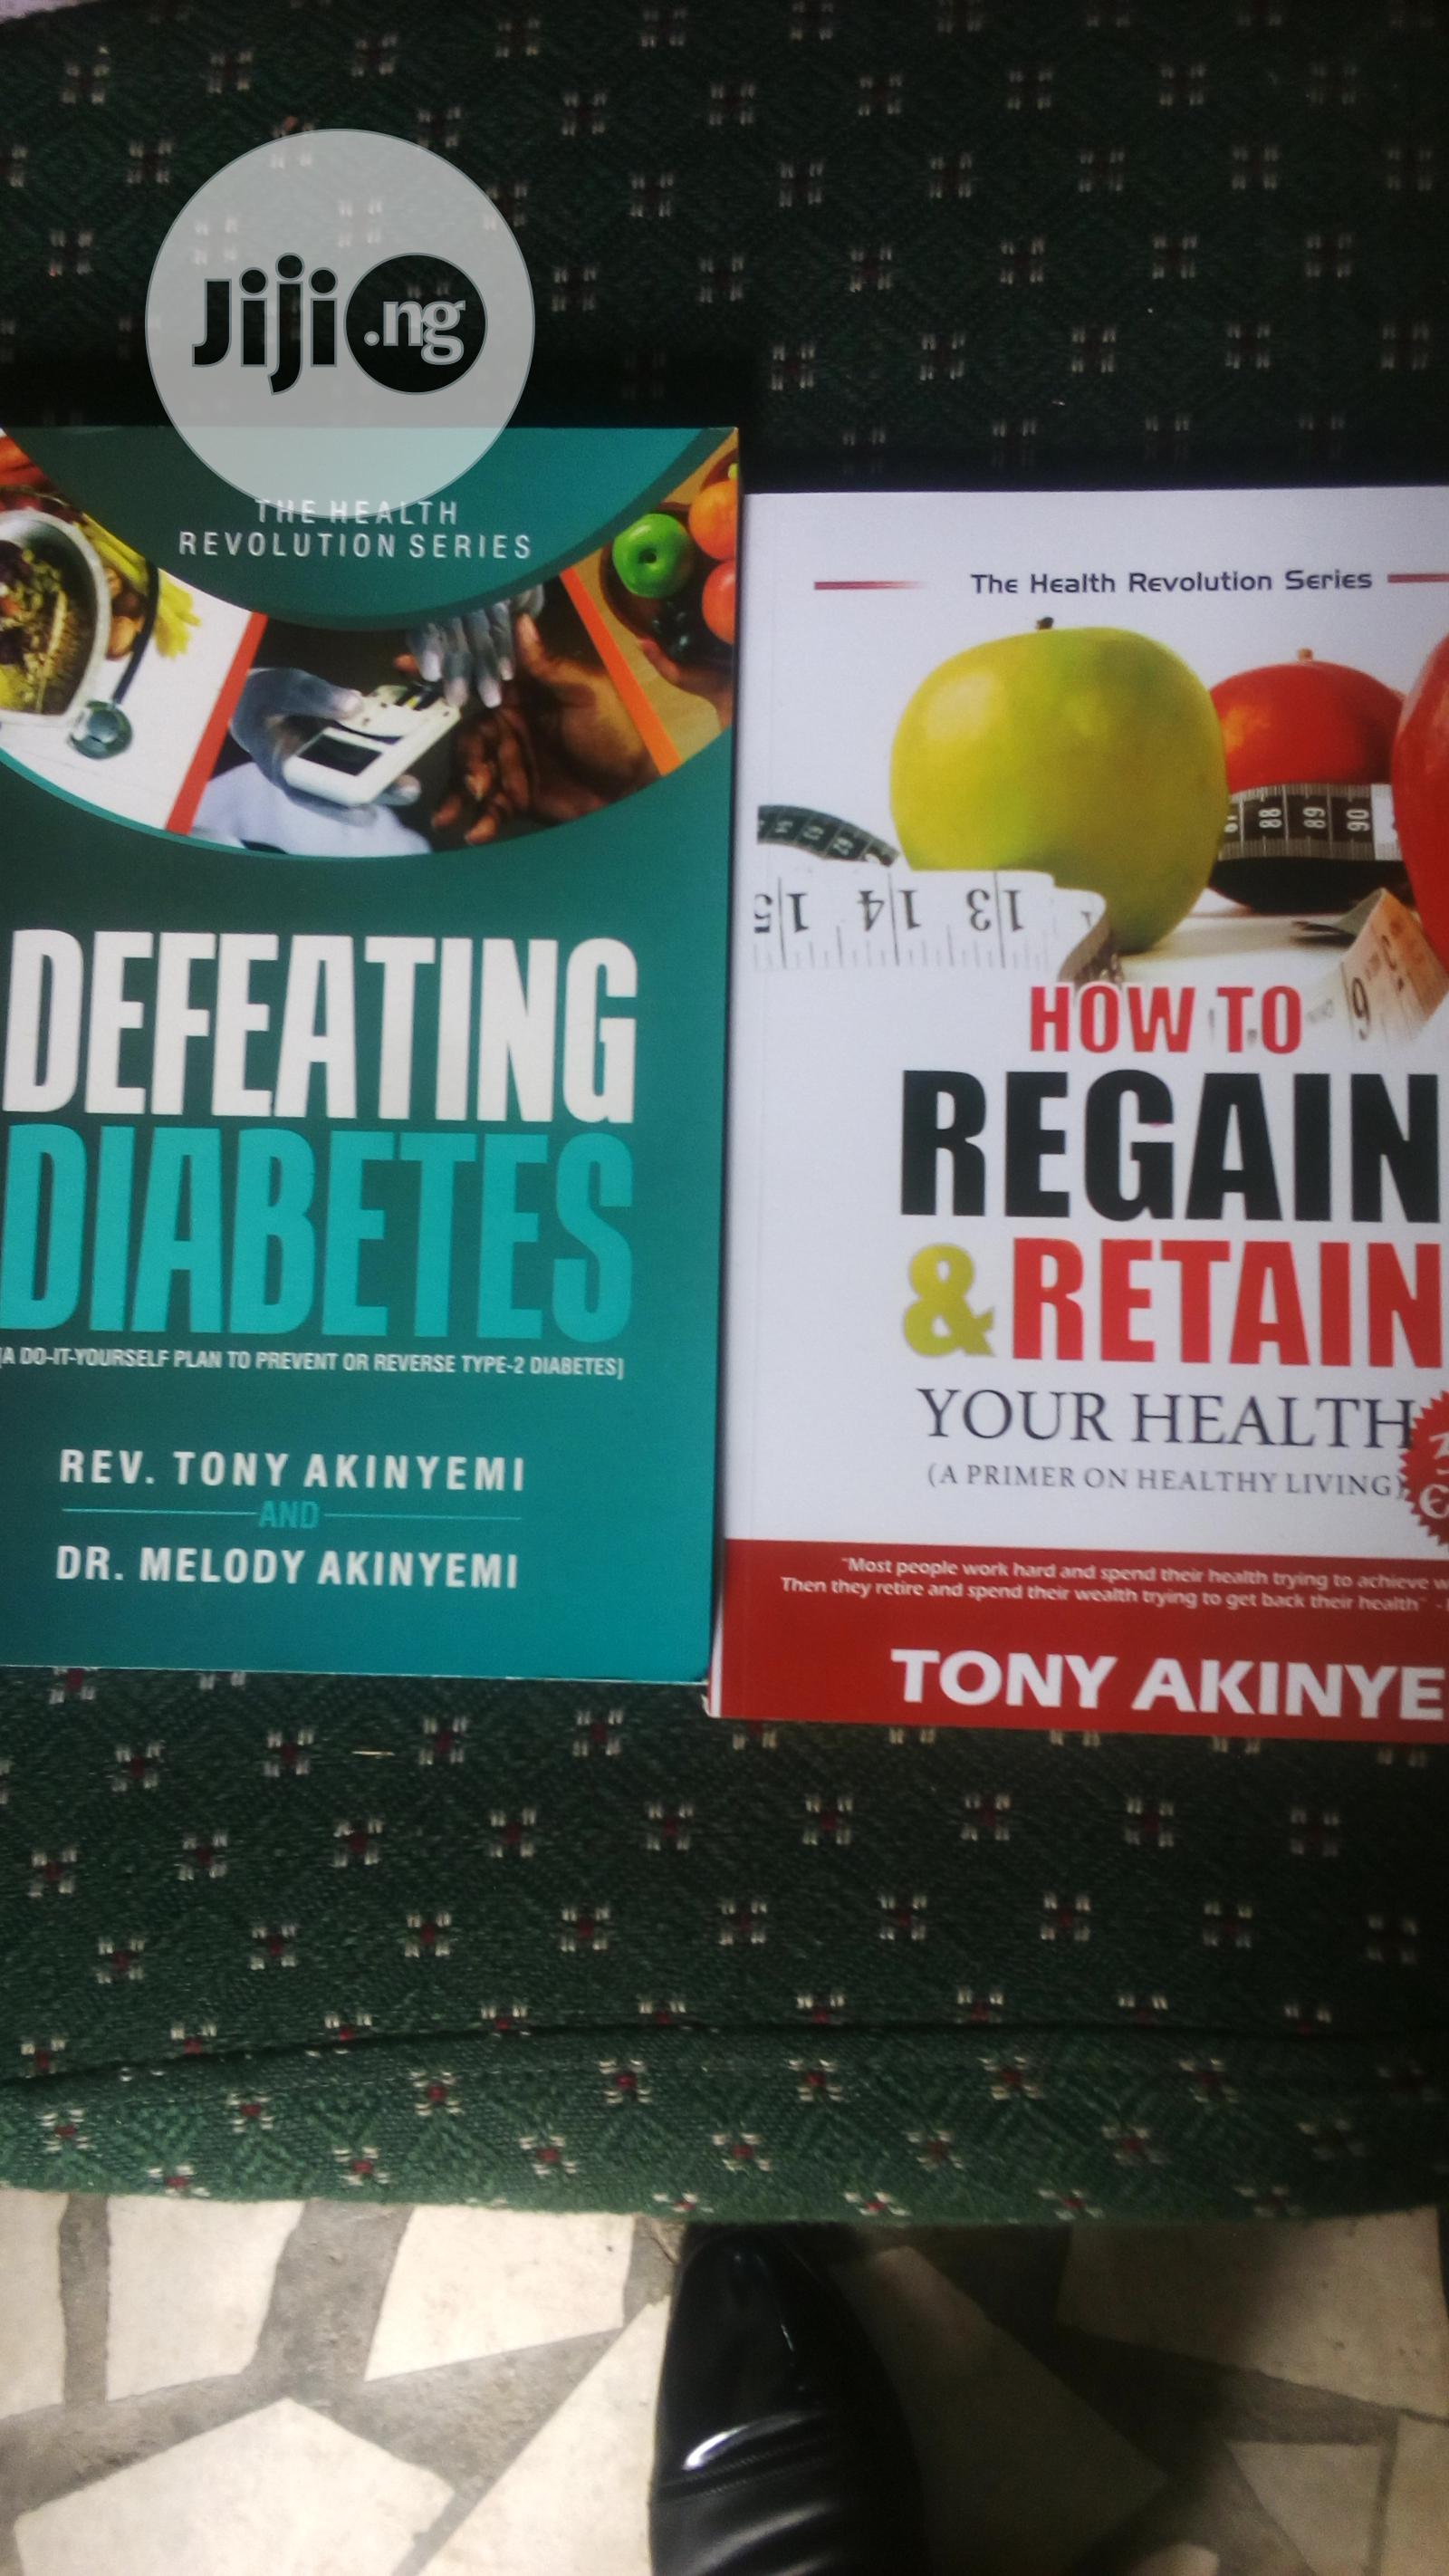 Archive: How To Regain & Retain Your Health & Defeating Diabetes